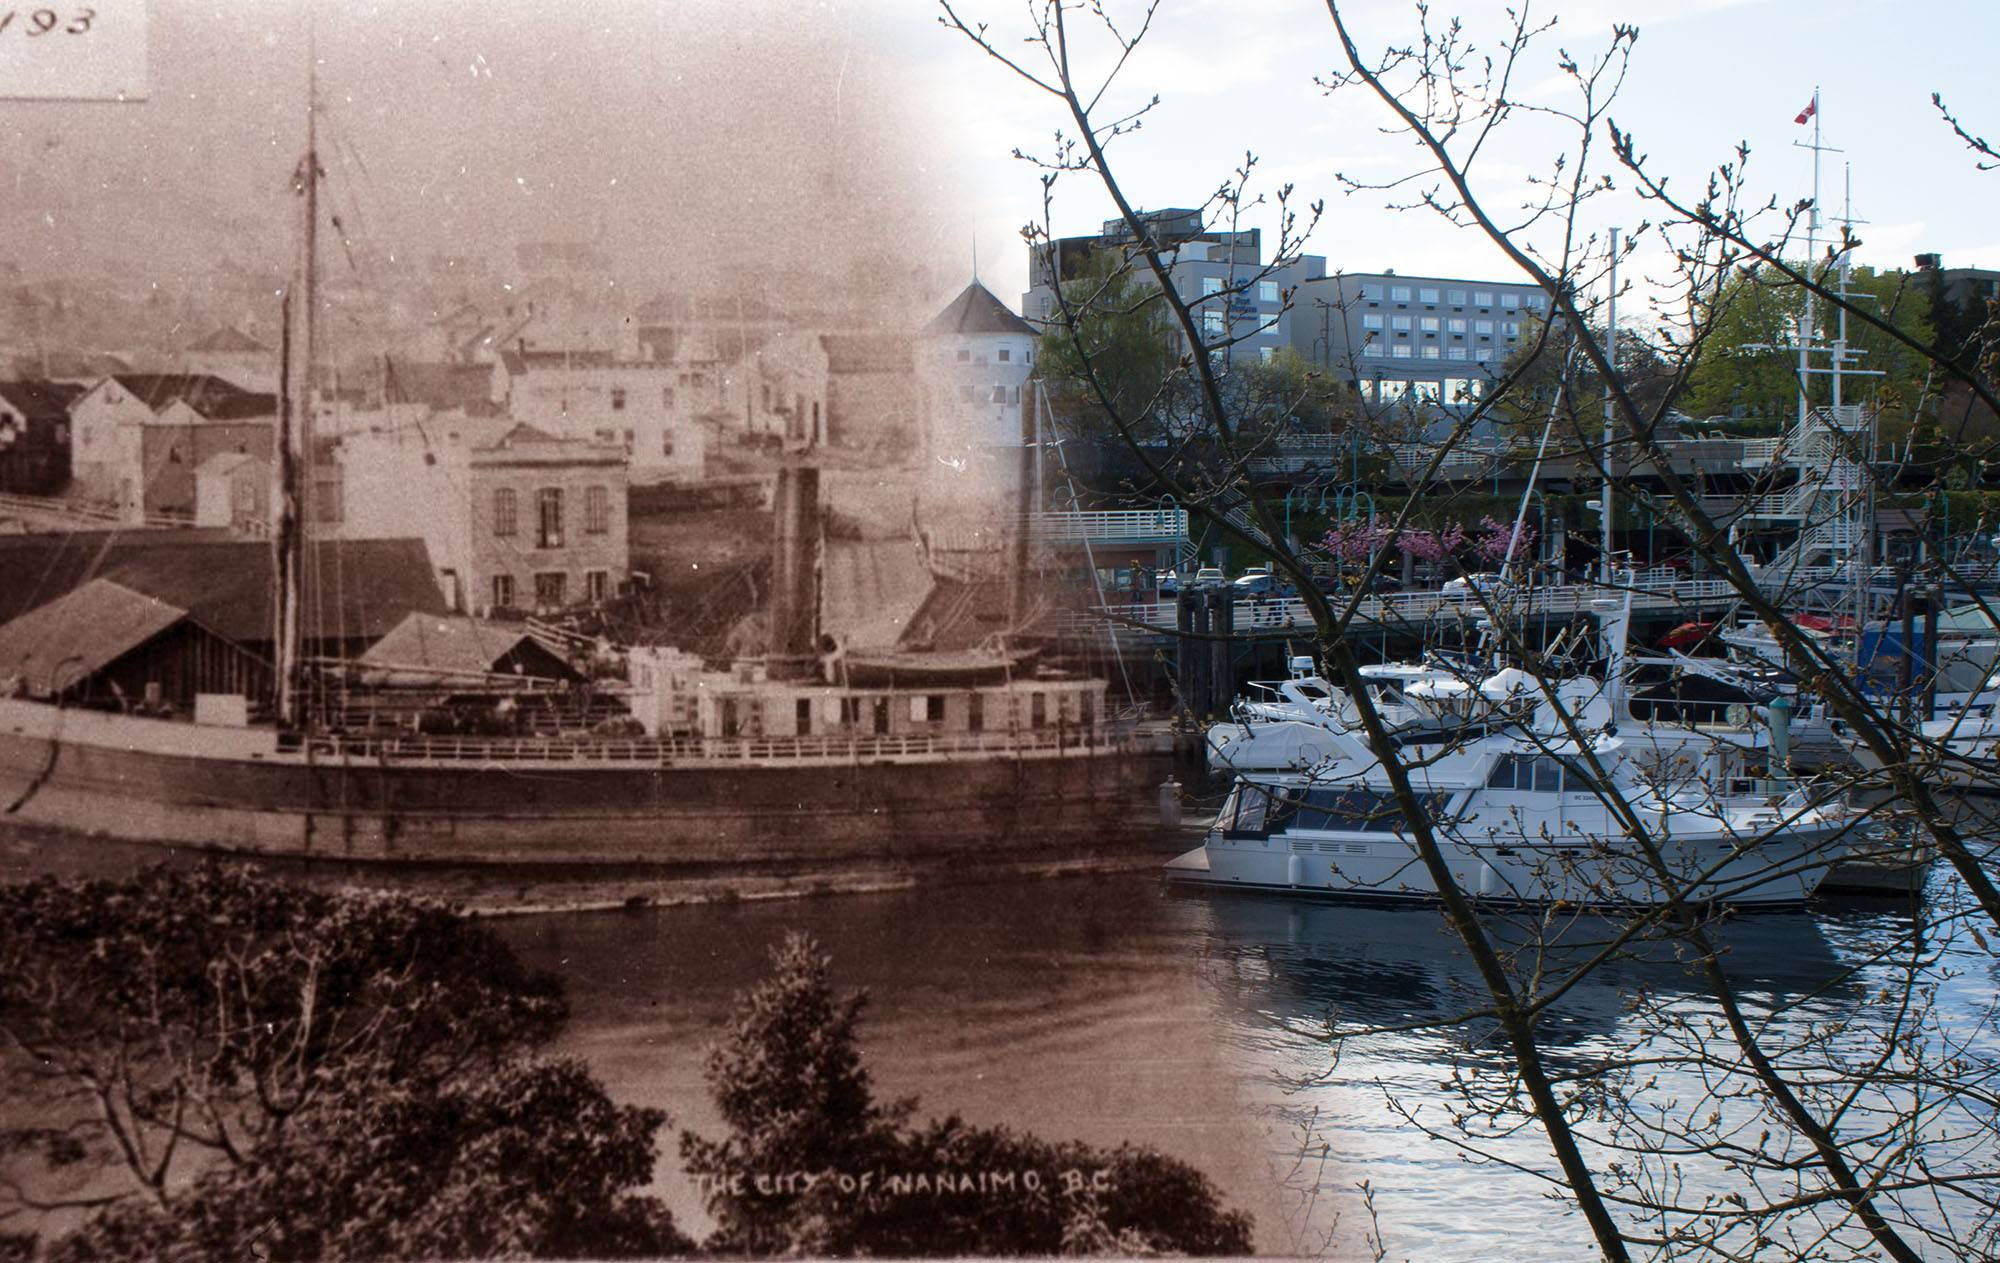 A steamer moored at the government wharf in Nanaimo in the 1880s (Nanaimo Museum/On This Spot)